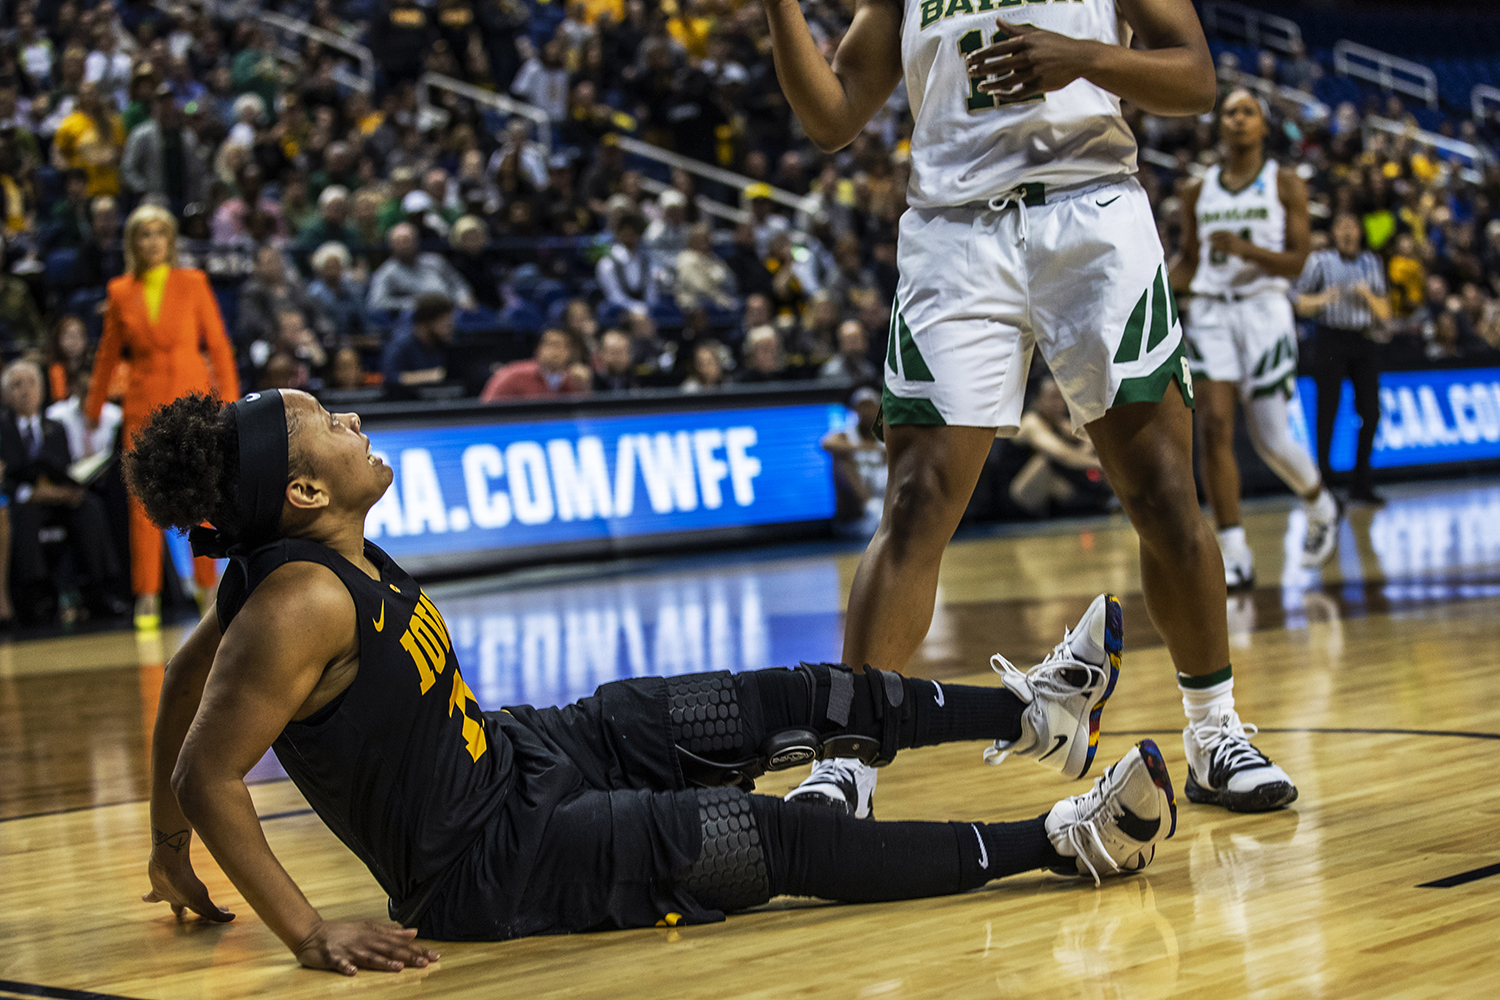 Iowa+guard+Tania+Davis+watches+as+Baylor+steals+away+the+ball+during+the+NCAA+Elite+8+game+against+Baylor+at+the+Greensboro+Coliseum+Complex+on+Monday%2C+April+1%2C+2019.+The+Bears+defeated+the+Hawkeyes+85-53.